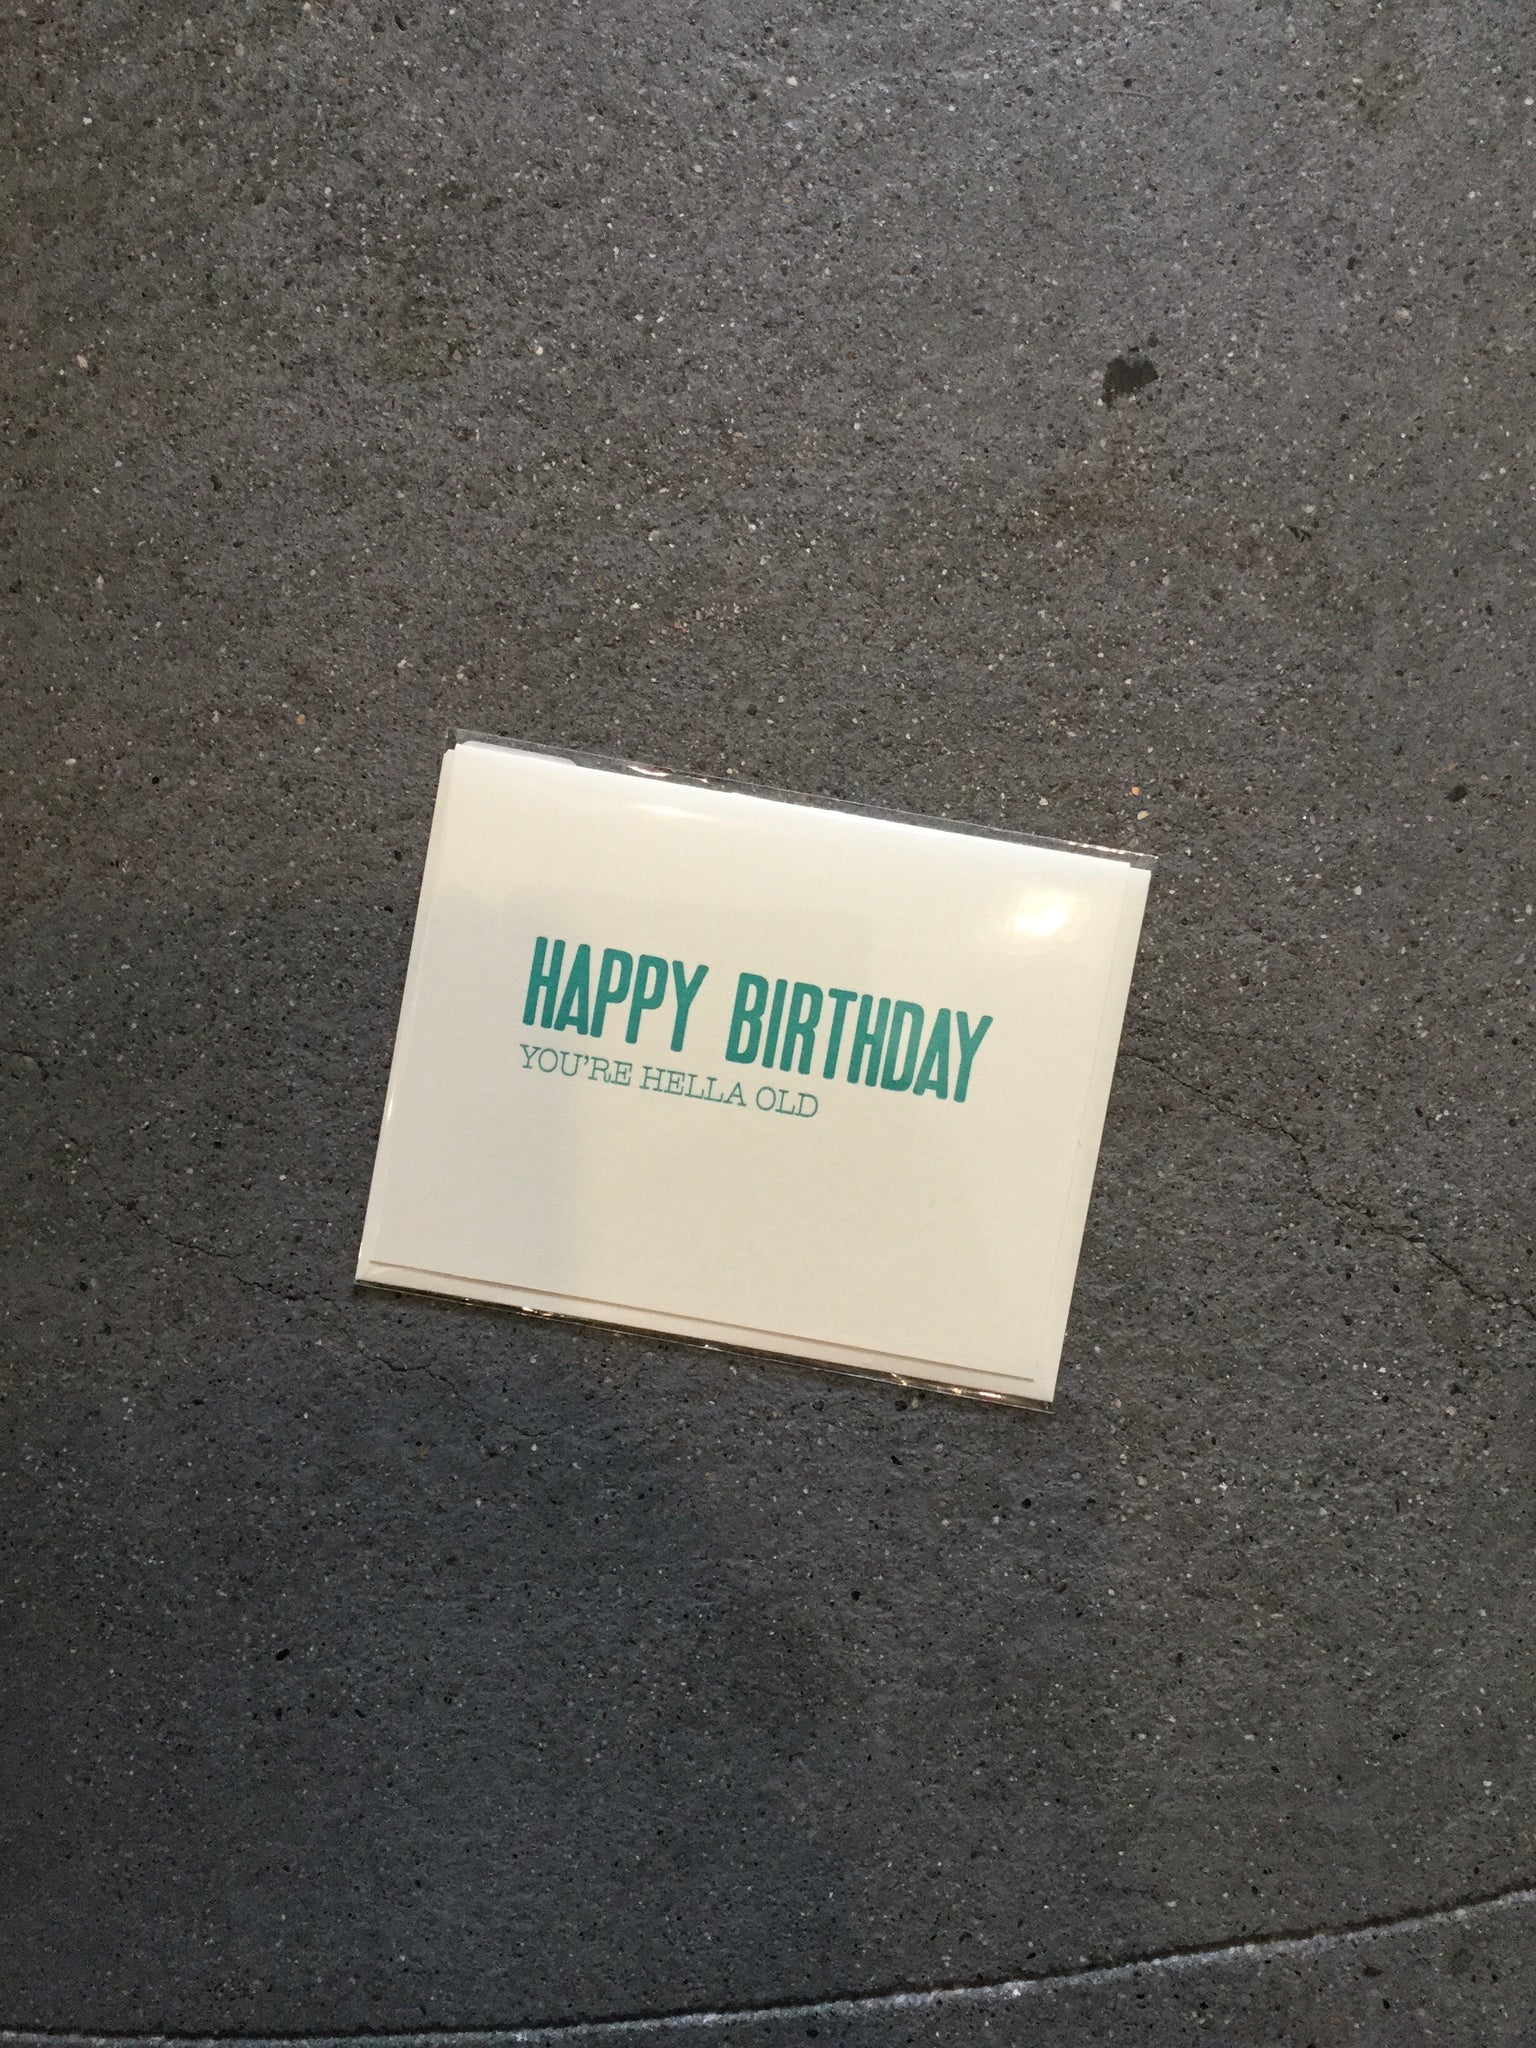 HAPPY BIRTHDAY CARDS - open to view more!